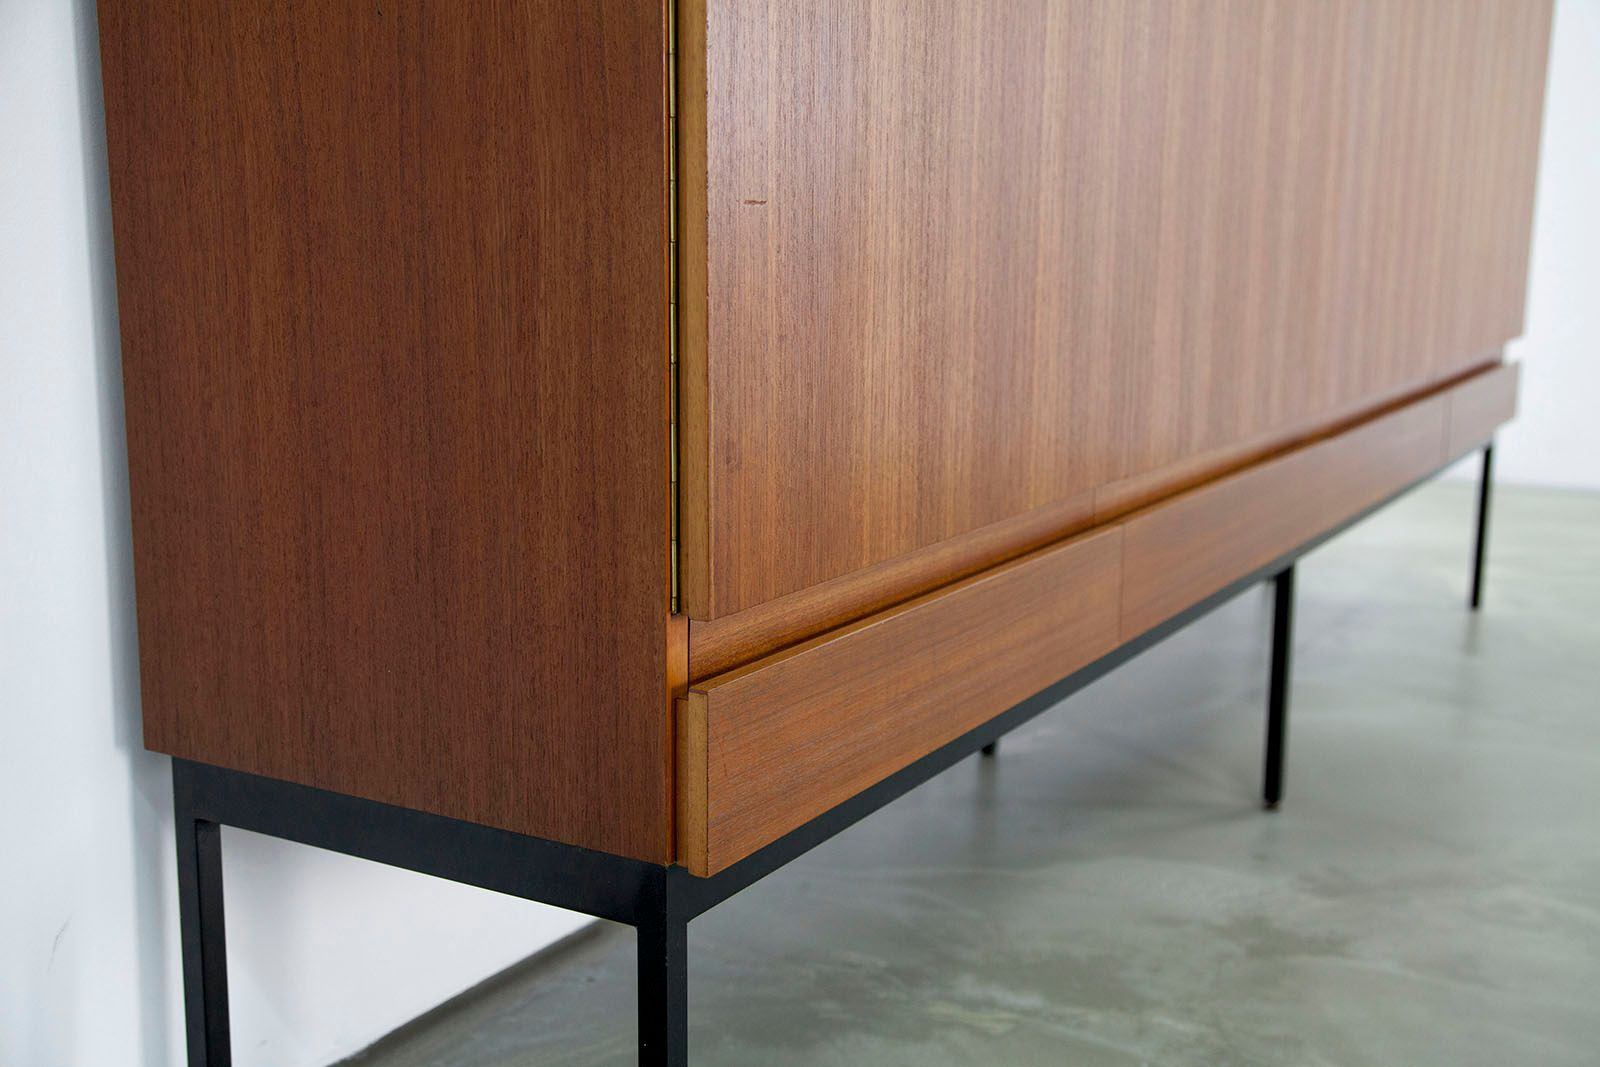 mid century b60 teak highboard by dieter waeckerlin for behr m bel 1958 en vente sur pamono. Black Bedroom Furniture Sets. Home Design Ideas